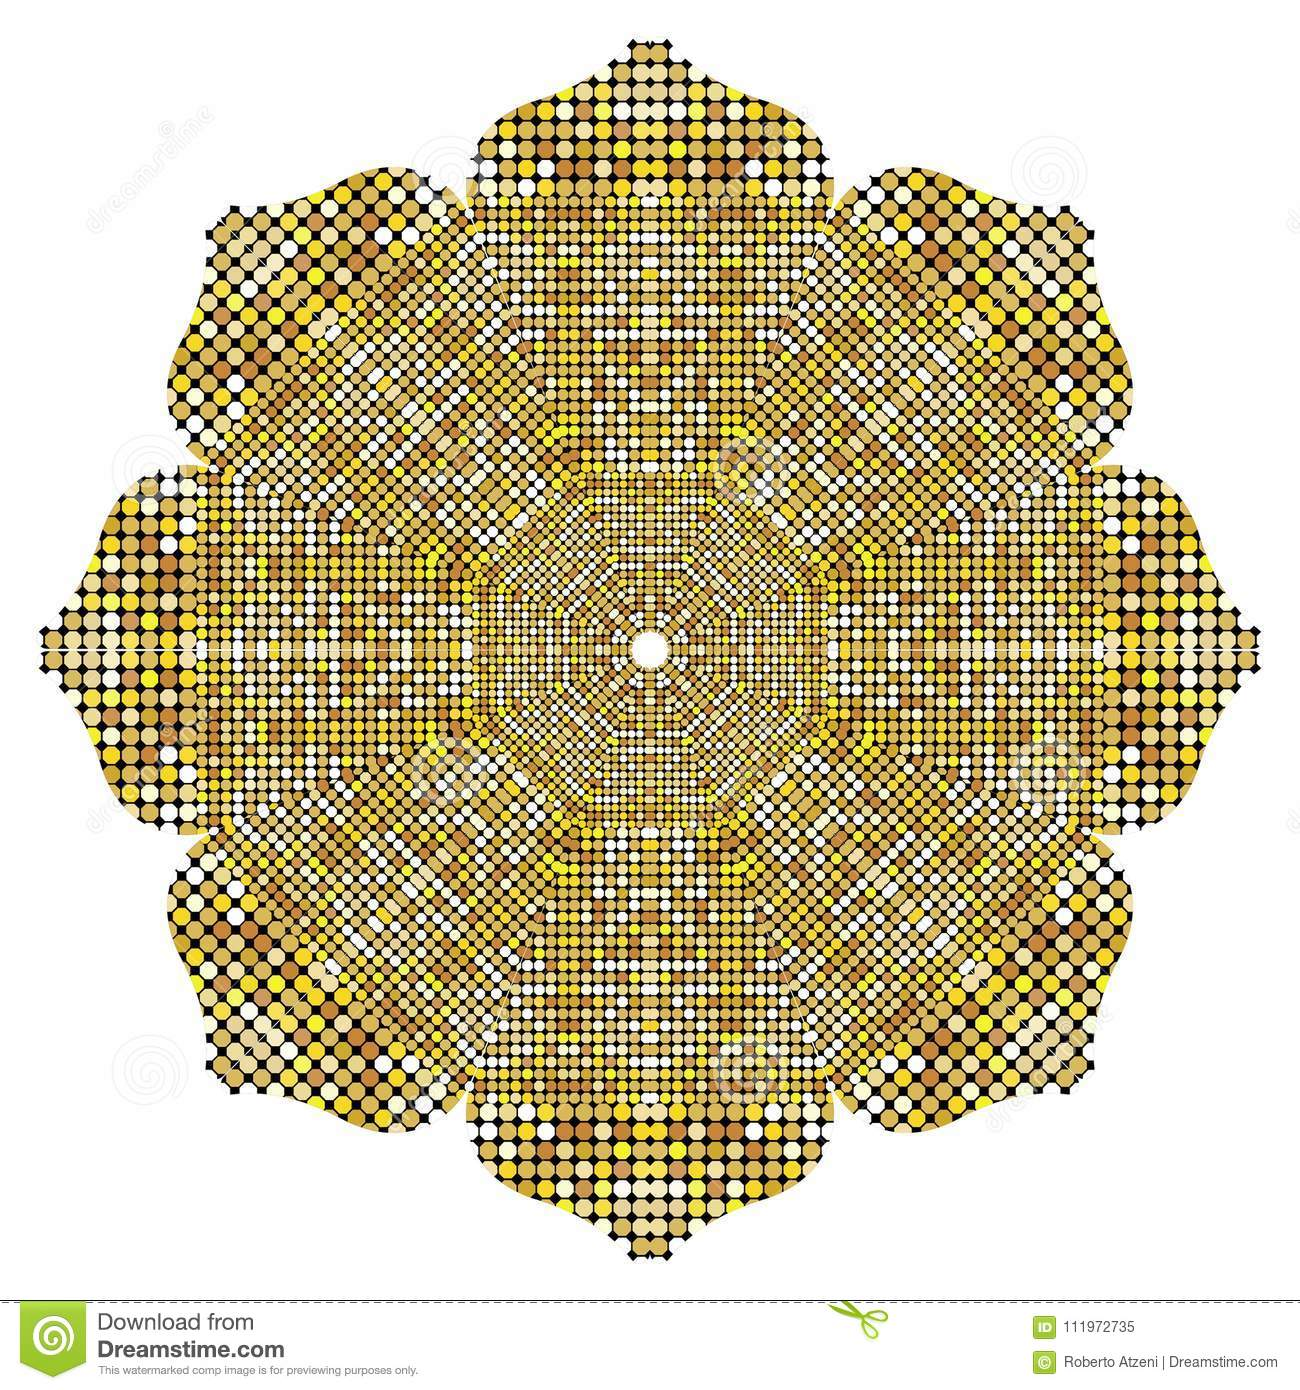 Gold Mandala texture with golden mosaics in the Byzantine style/Antique mosaic/Mosaic tiles in antique style. Cobblestone texture